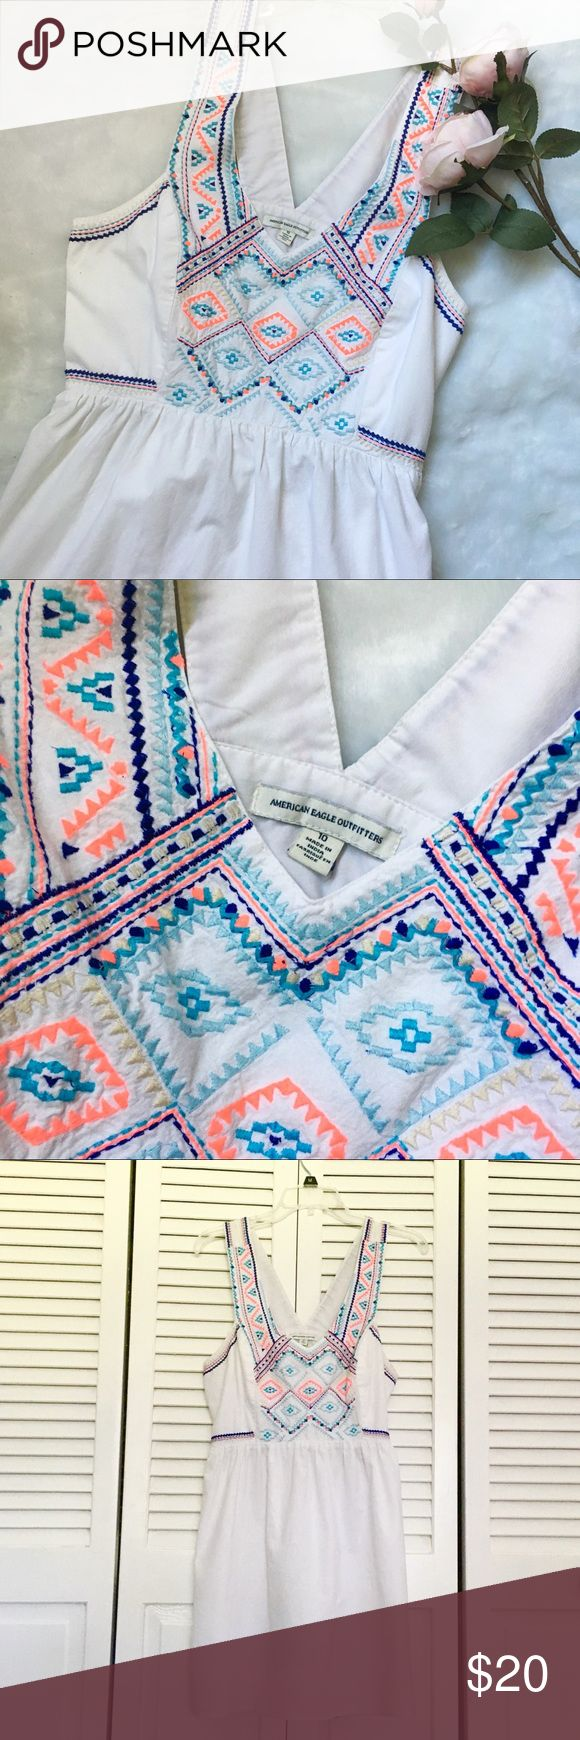 American Eagle Neon Aztec Embroidered Dress! 🦋 Pretty white American Eagle dress with neon colored embroidery! // Cute Aztec prints! // Unique back with semi-crossed straps and a cut out in the back // Goes to a little above the knee. Zipper on the side. // Can fit size 10 and smaller! // Perfect for a beach cover-up! // Minor pilling under the arms. Great used condition overall! American Eagle Outfitters Dresses